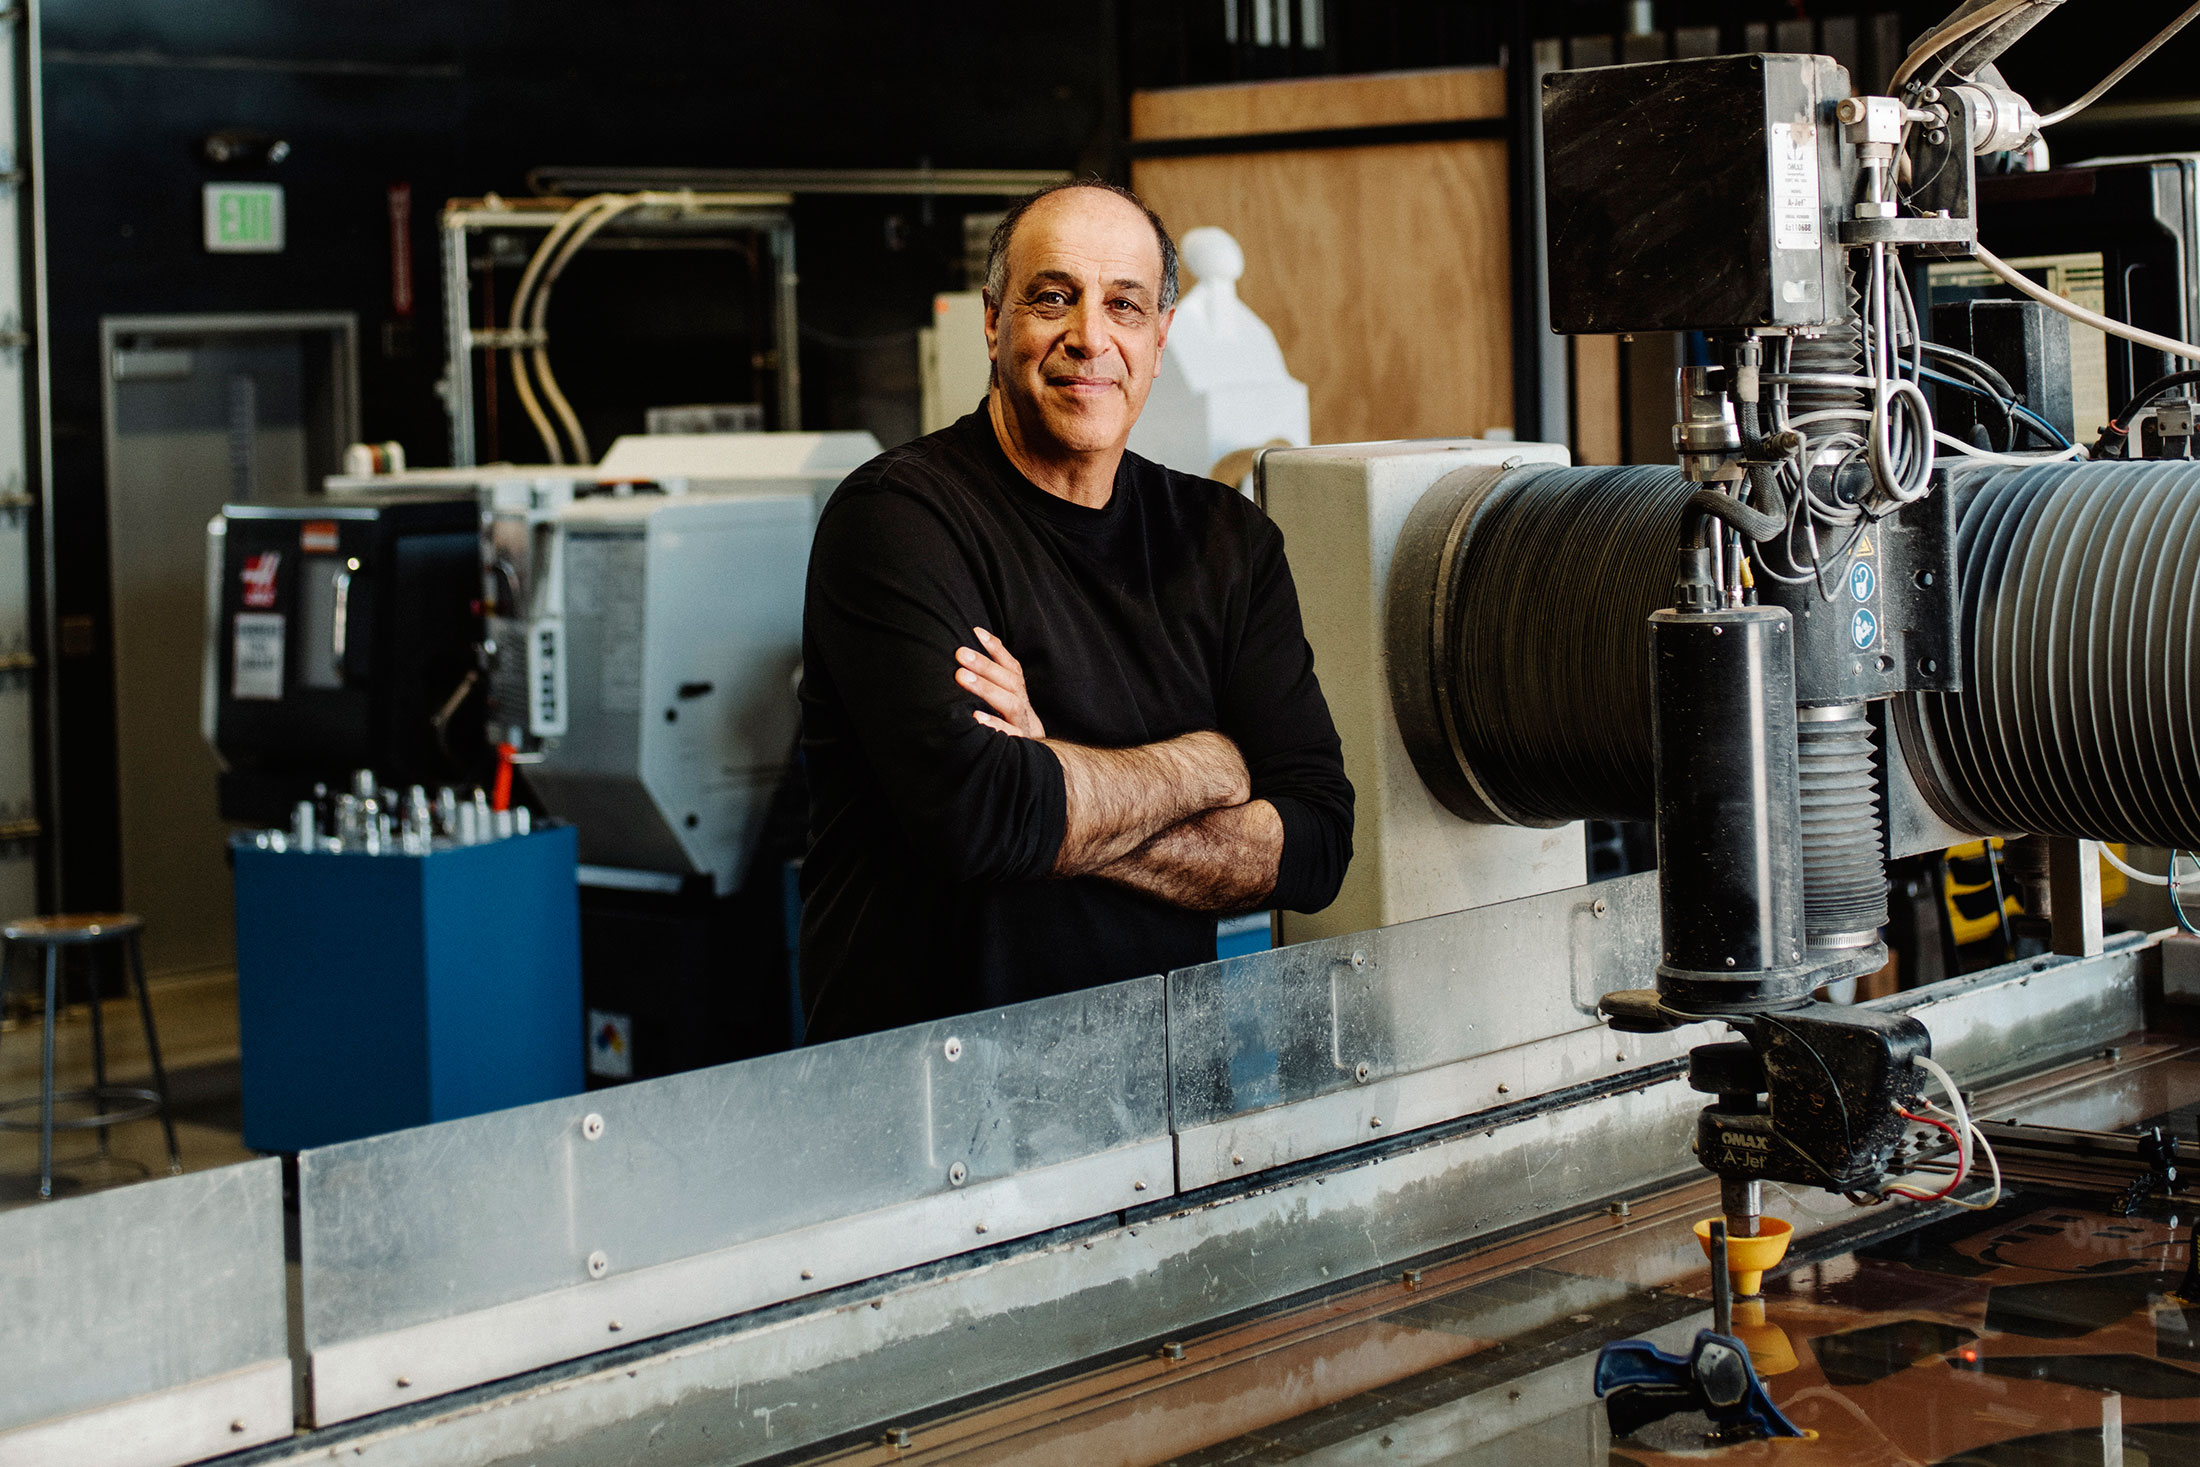 Autodesk CEO Carl Bass inside his company's workshop. (Photo: Jake Stangel/Surface)